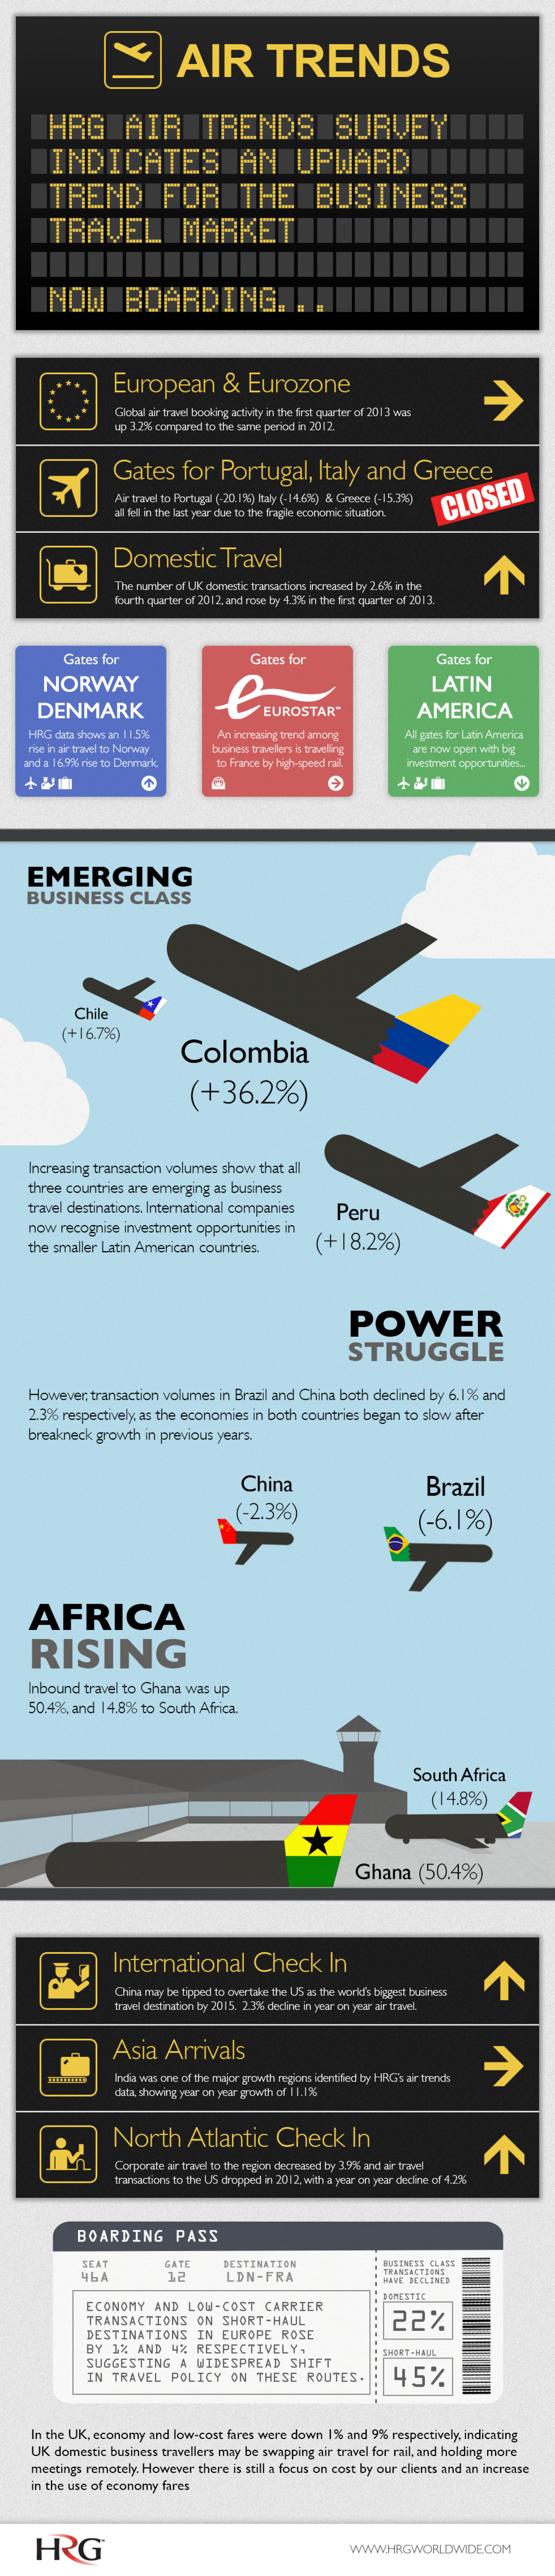 HRG - Air Trends Infographic